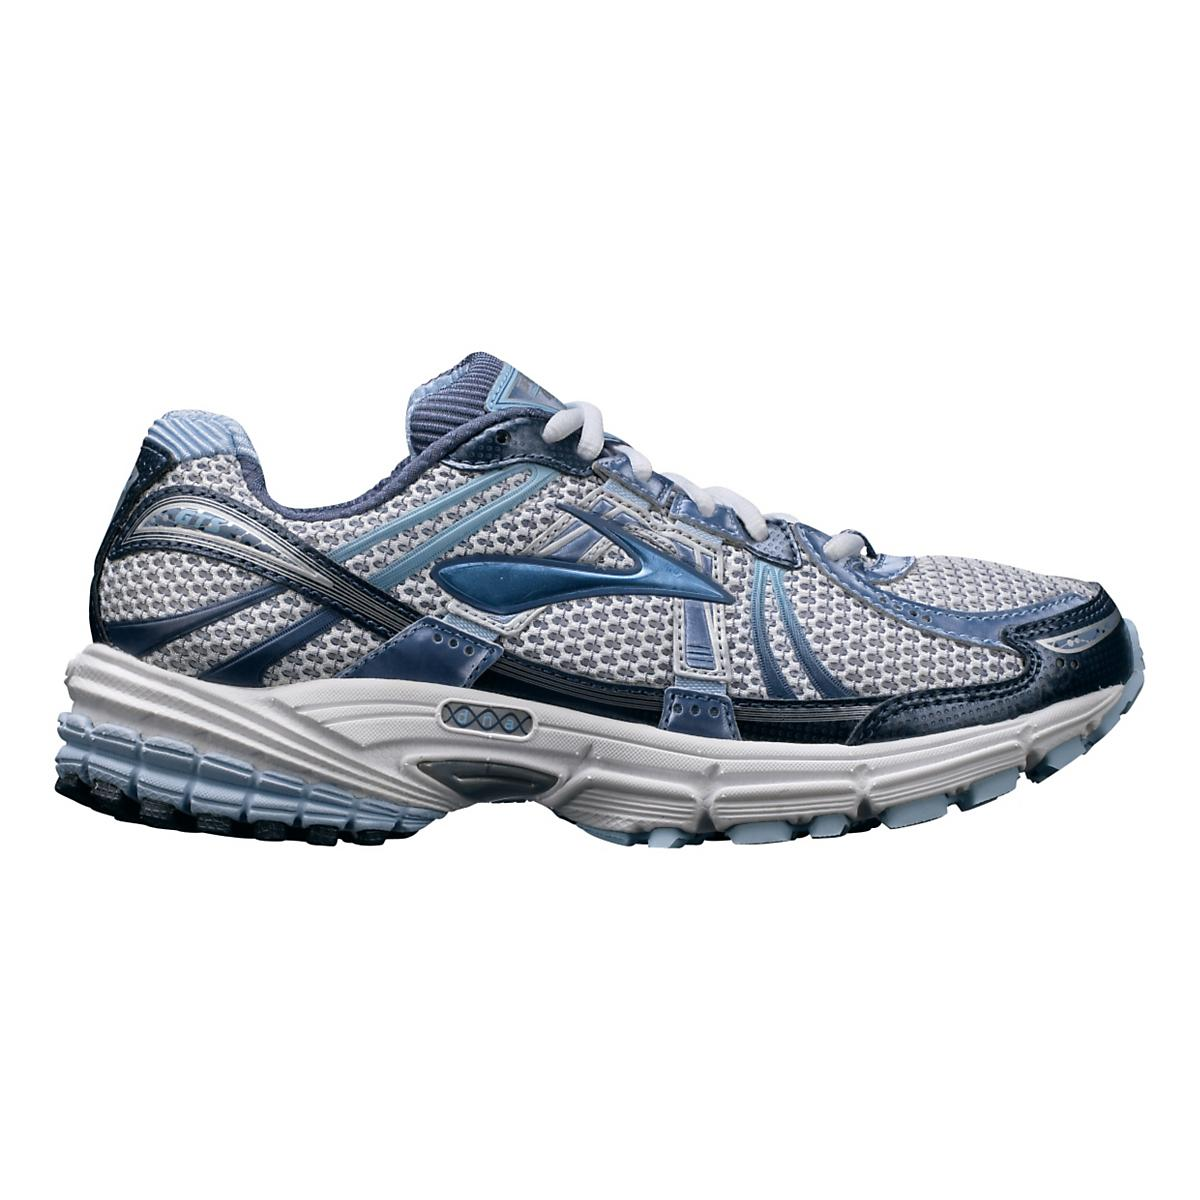 45ac625920b Womens Brooks Adrenaline GTS 12 Running Shoe at Road Runner Sports